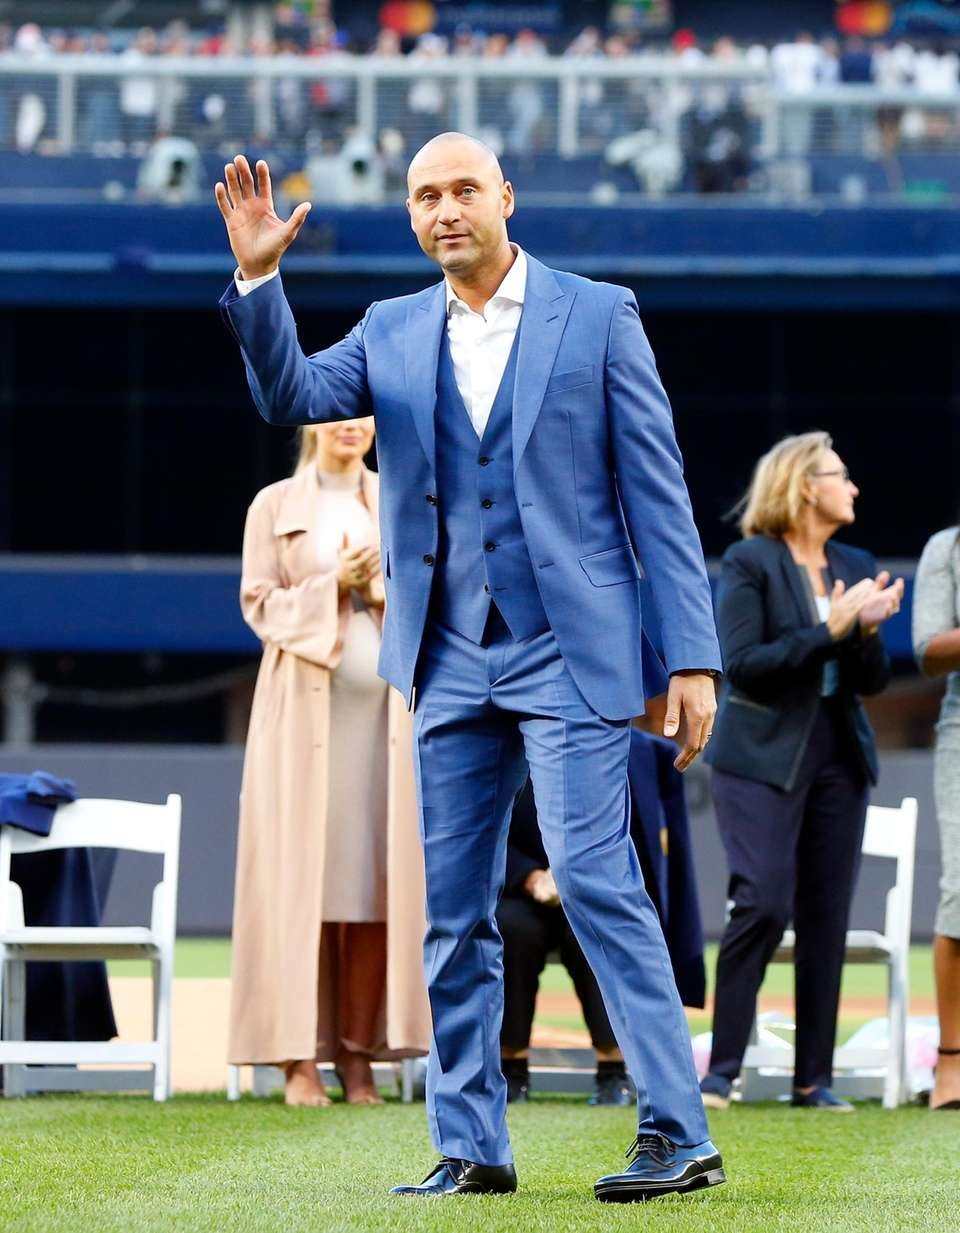 Derek Jeter greets the crowd after speaking during